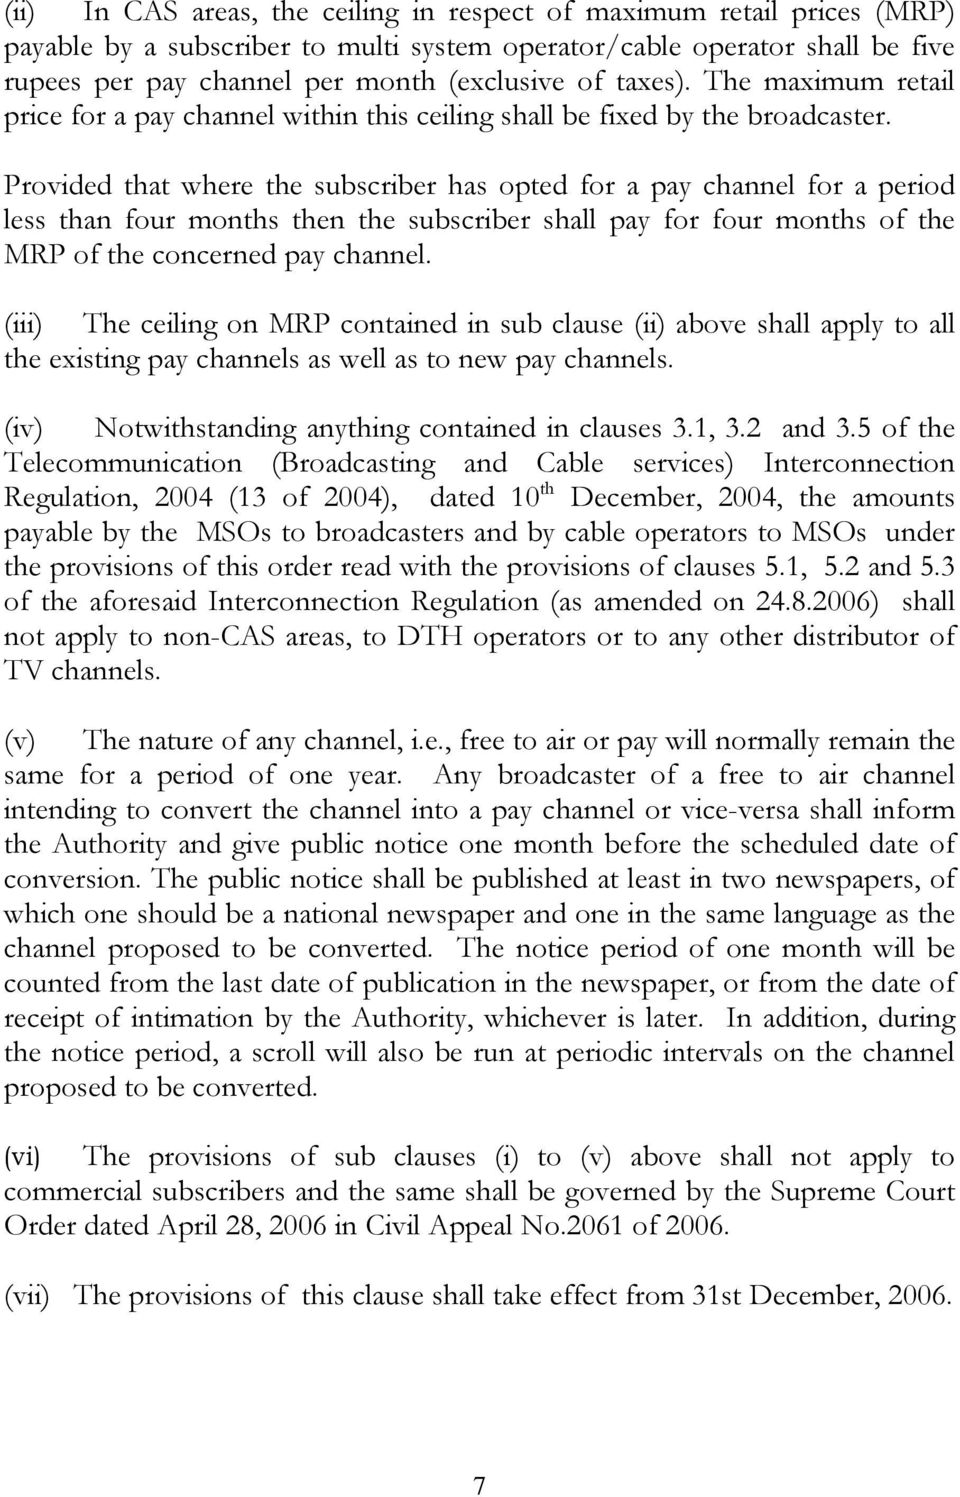 Provided that where the subscriber has opted for a pay channel for a period less than four months then the subscriber shall pay for four months of the MRP of the concerned pay channel.